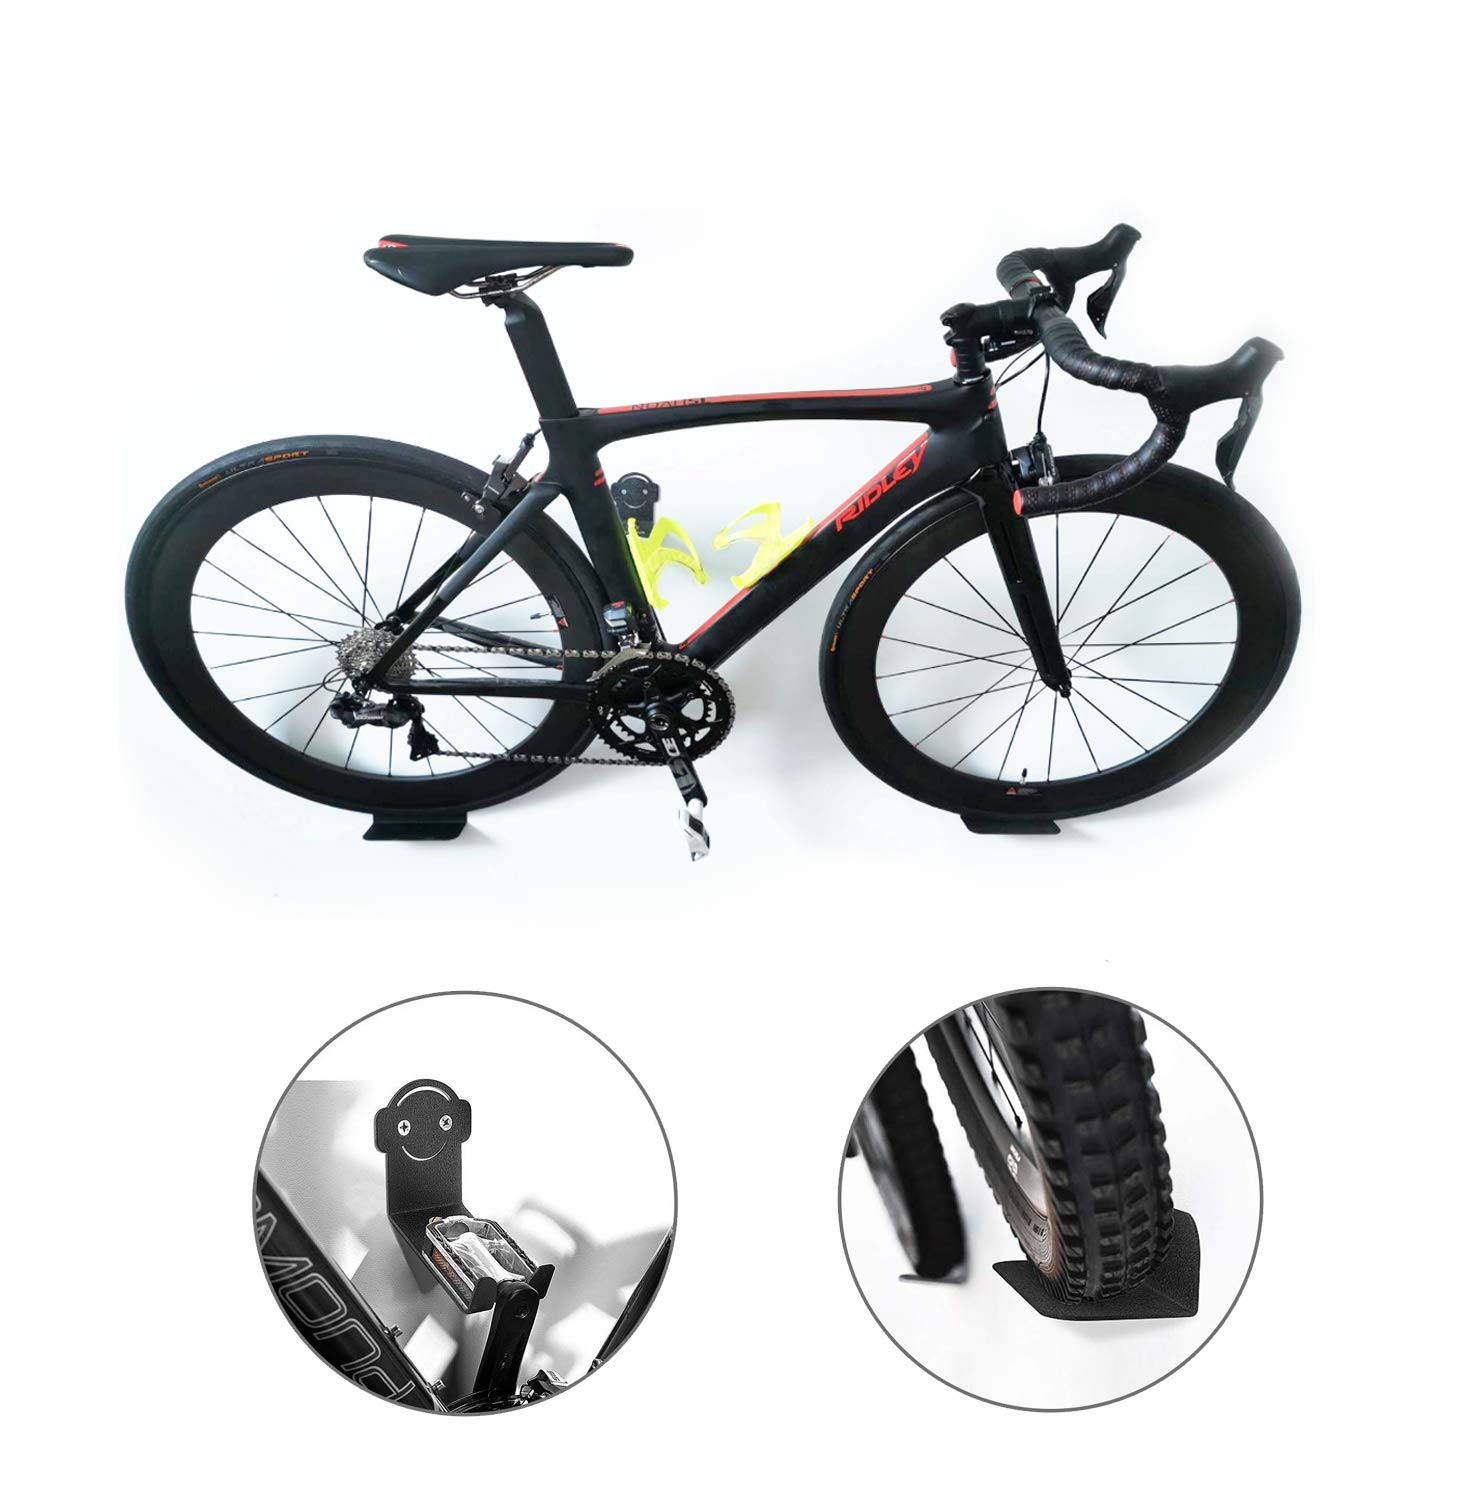 Bike Hook Wall Mount Hanger or Outdoor Hanging Your Road Heavy Duty Horizontal Indoor Storage Rack for 1 Bicycle Garage Mountain or Hybrid Bikes in Home Safe and Secure